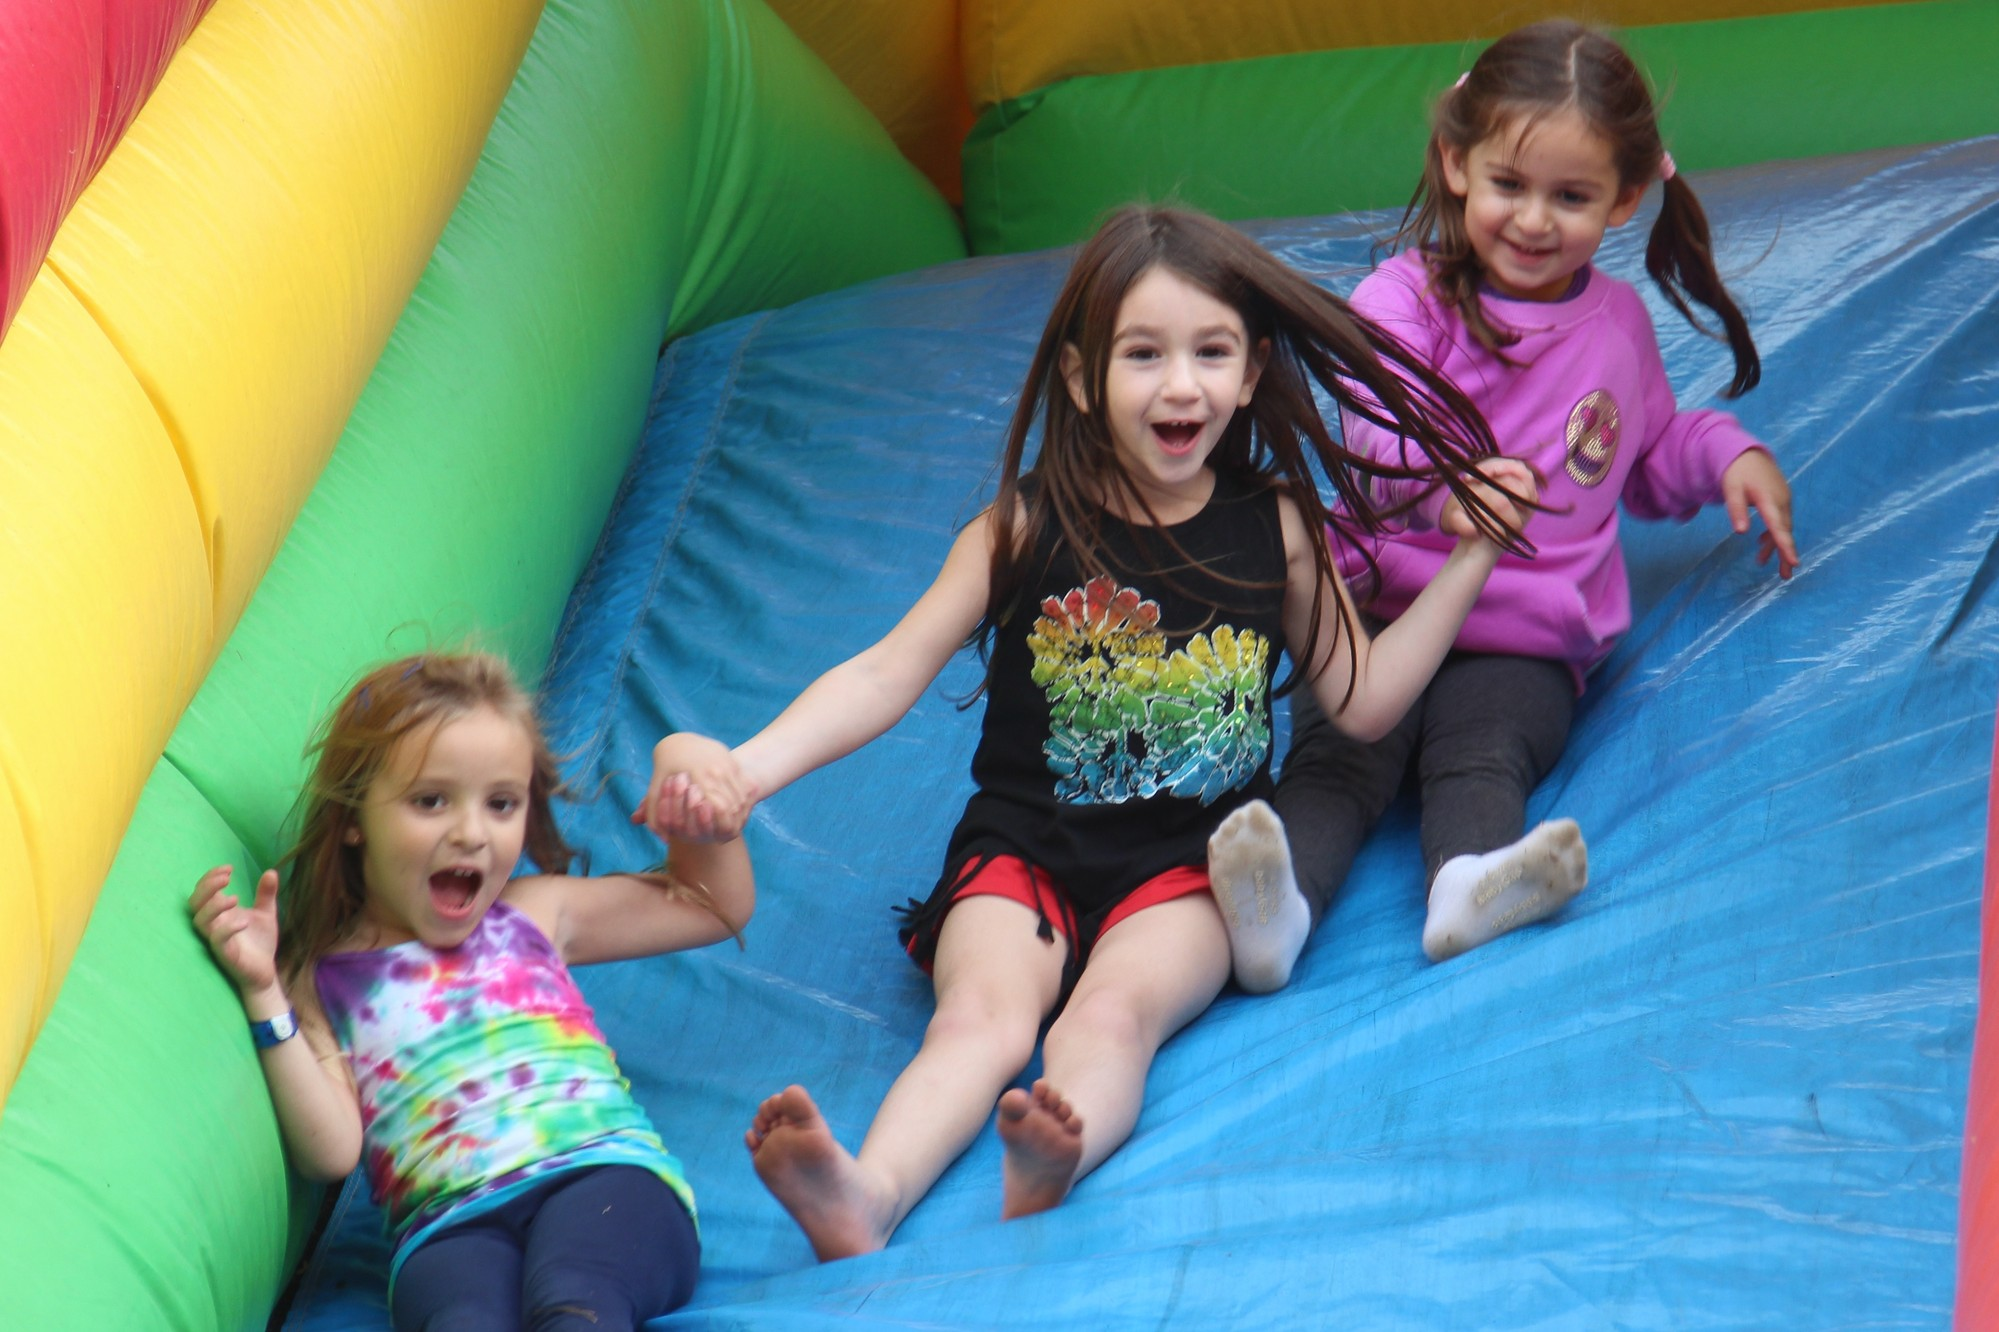 Going down the big slide was a lot of fun for three young girls, including Logan Sheflin, far left.